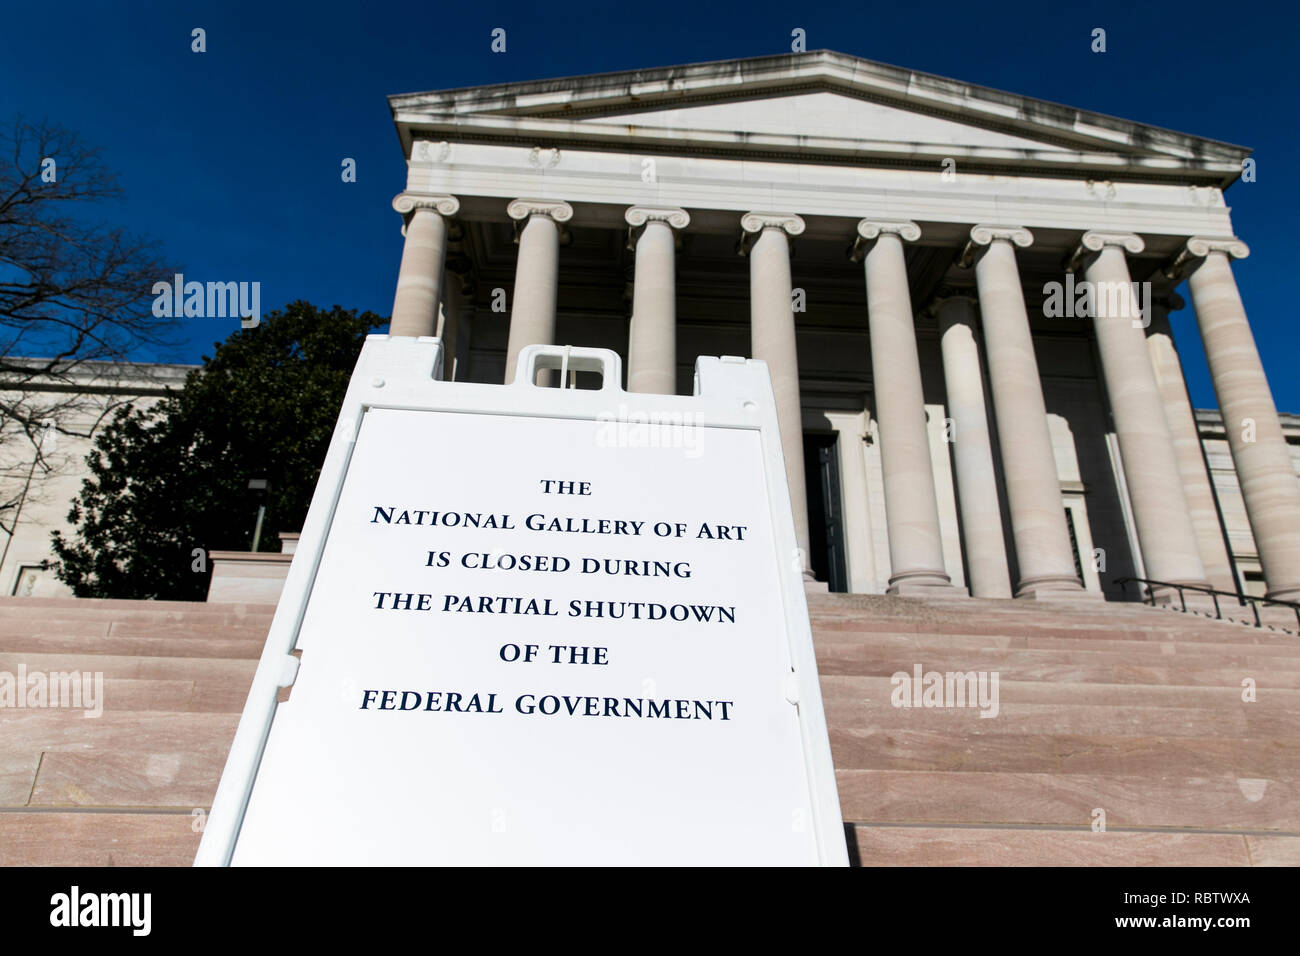 Washington, DC, USA. 11th Jan, 2019. A sign outside of the National Gallery Of Art informing visitors that the museum is closed due to the partial Government shutdown in Washington, DC on January 11, 2019. The shutdown, now entering it's 22nd day, is the longest Government shutdown in U.S. history. Credit: Kristoffer Tripplaar/Alamy Live News Stock Photo